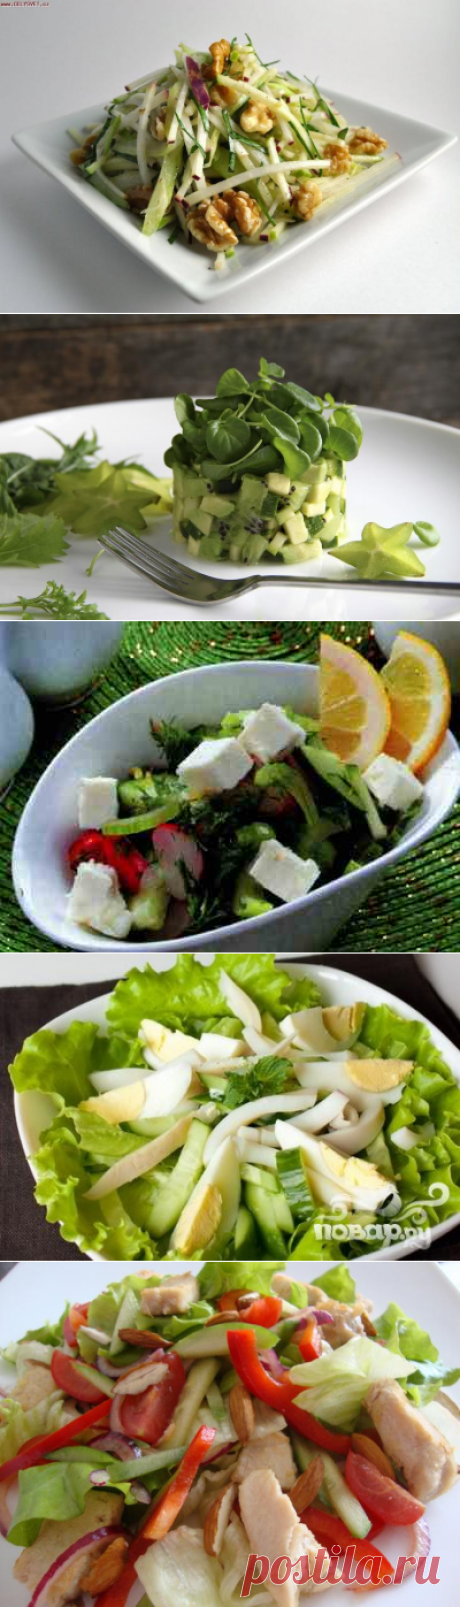 Top-5 ideas of salads for an easy dinner